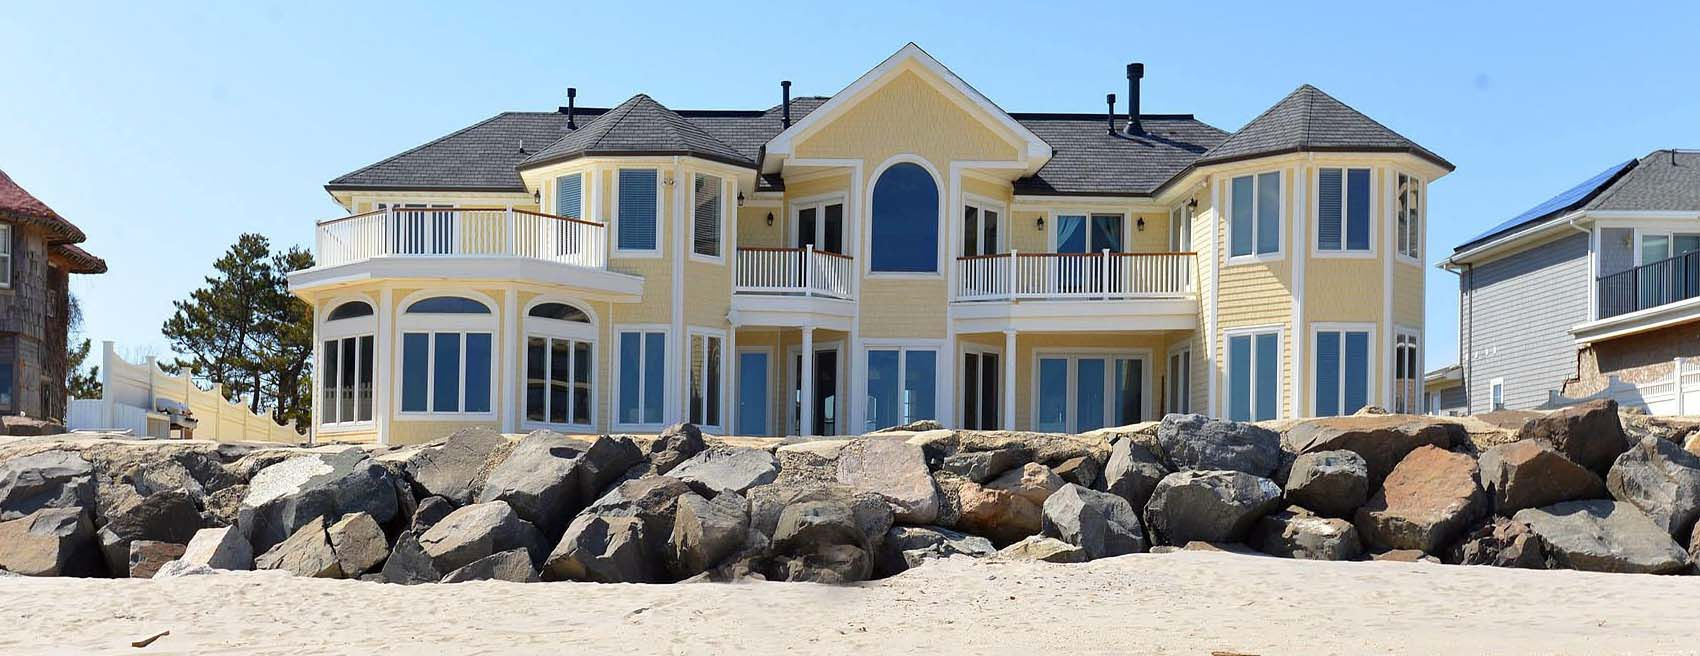 home addition builders Toms River NJ home addition contractors at the jersey shore NJ